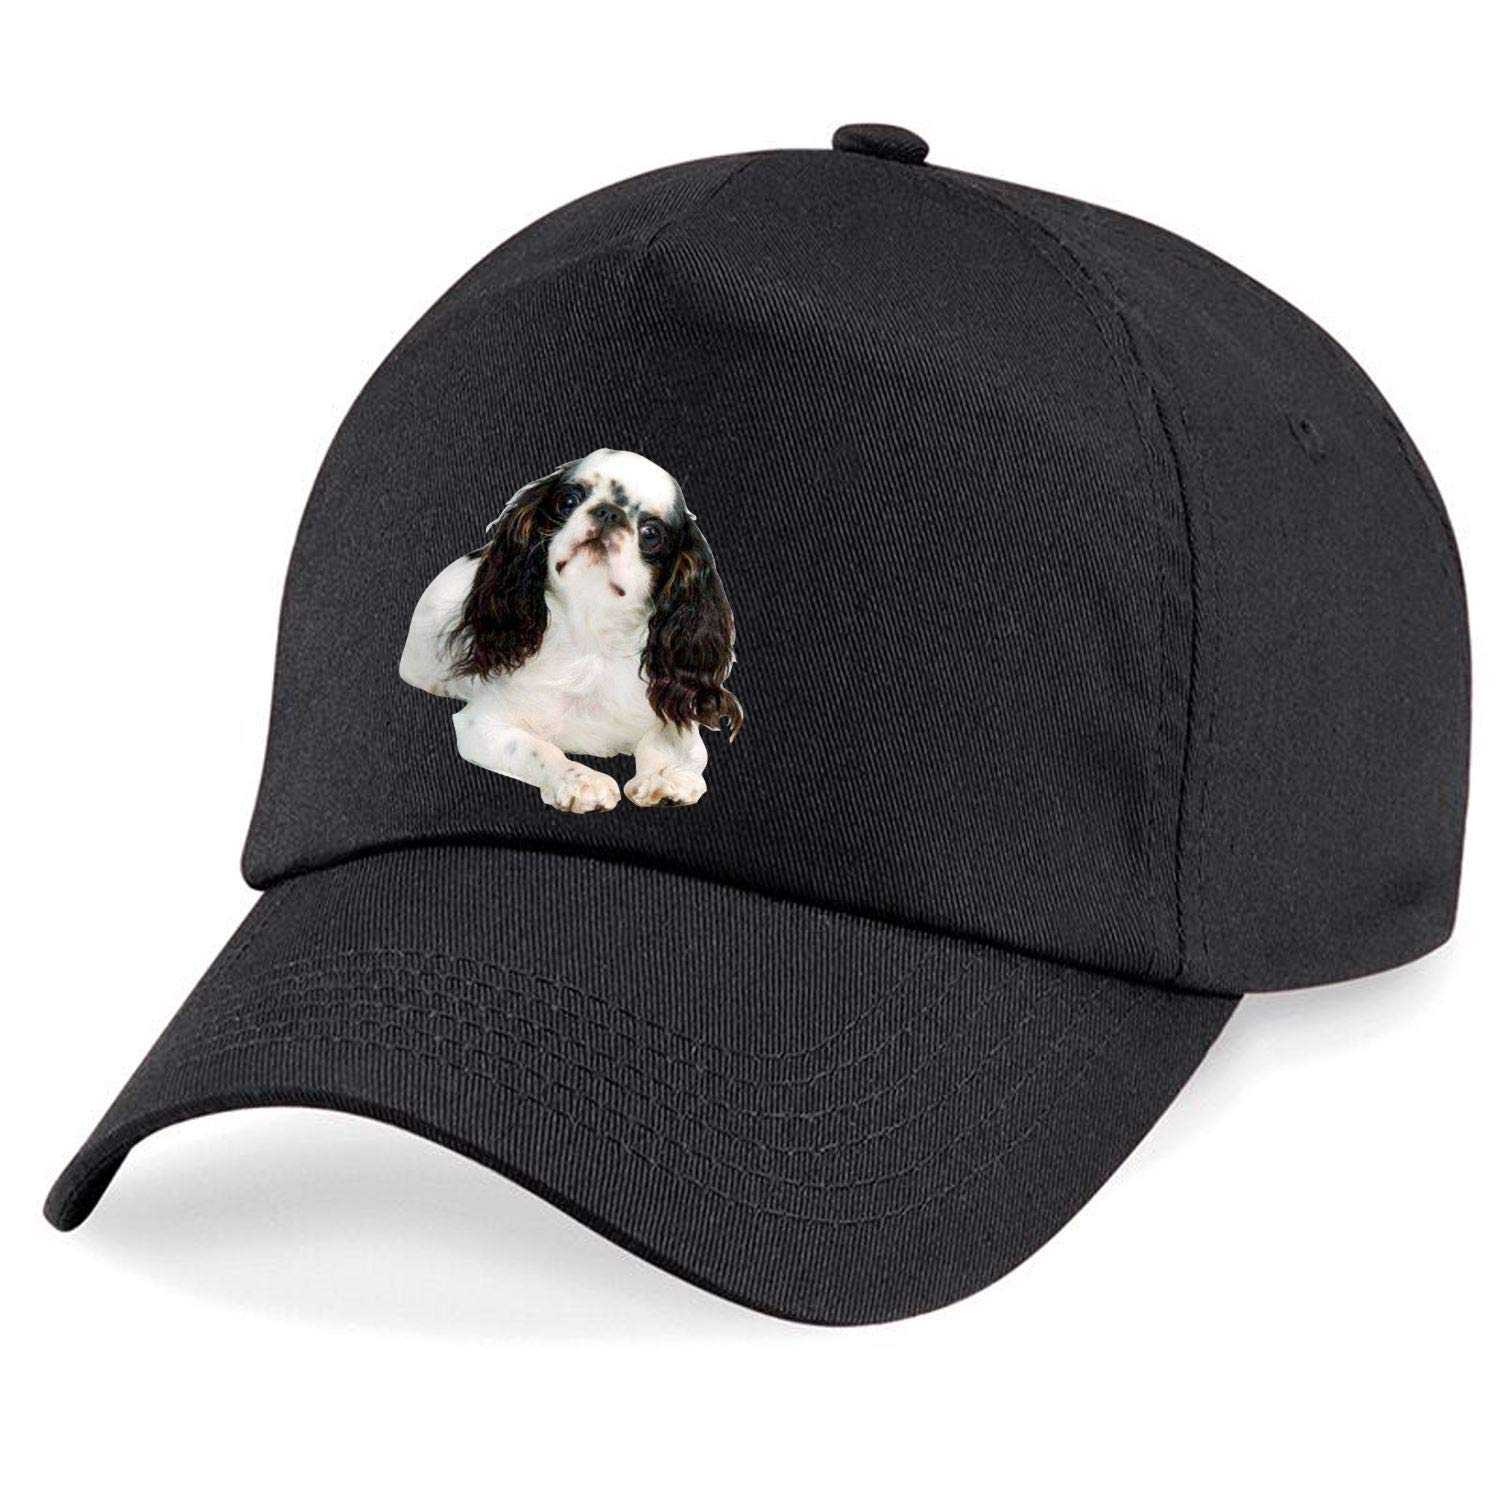 Taurus Clothing English Toy Spaniel Dog Personalised Embroidered Cap Black